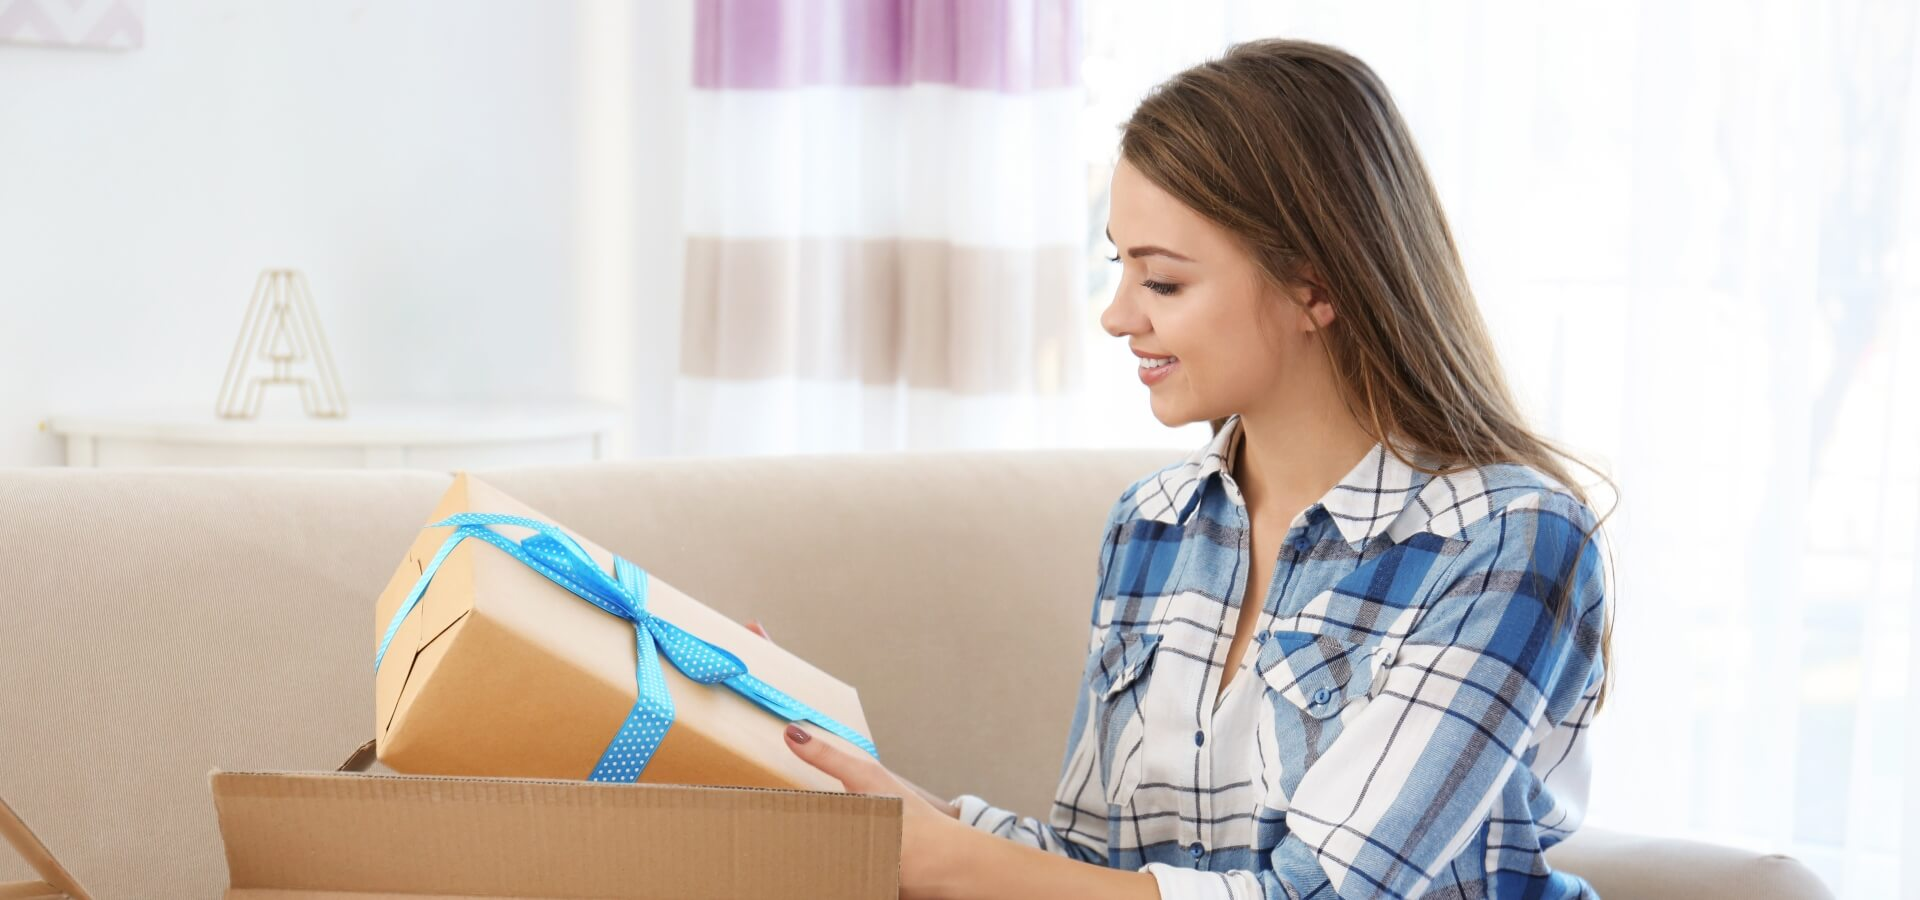 Hero image for Your Wedding is Postponed: What Happens to Your Registry Gifts?